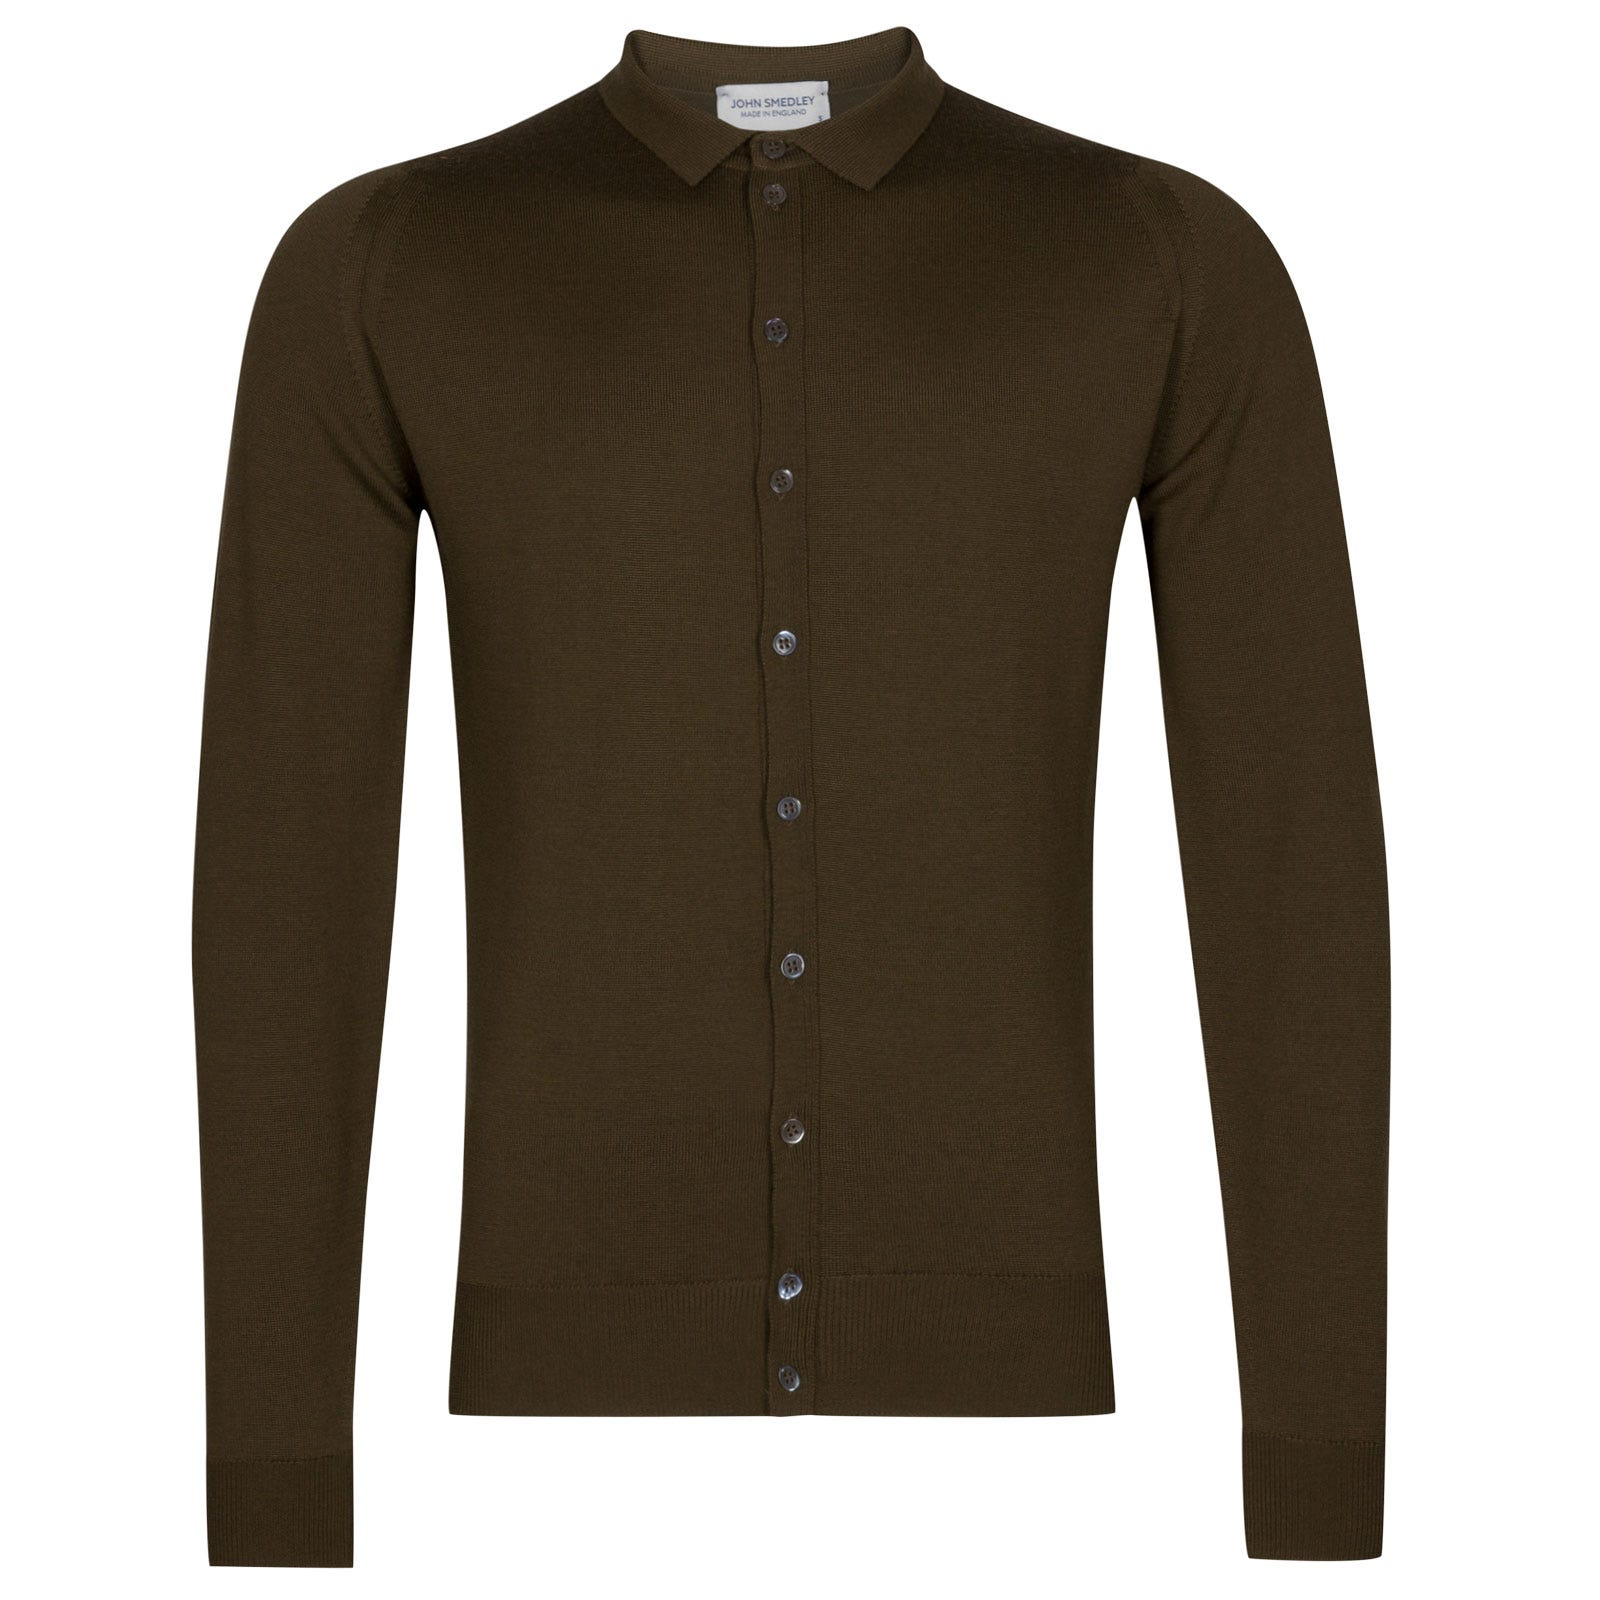 John Smedley parwish Merino Wool Shirt in Kielder Green-XXL